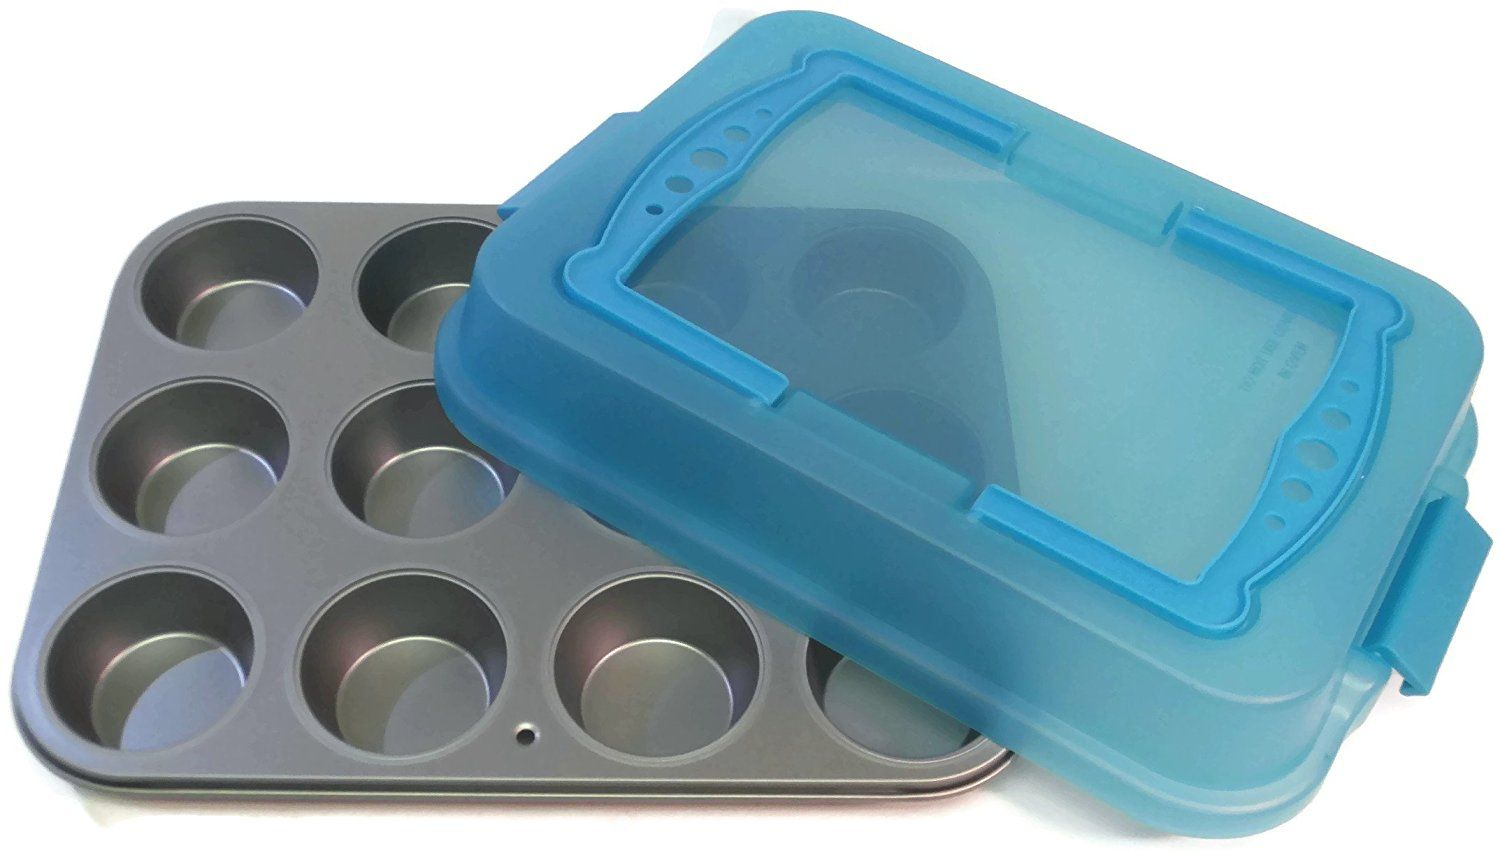 Ovenstuff nonstick 12 cup muffin pan with matching lid